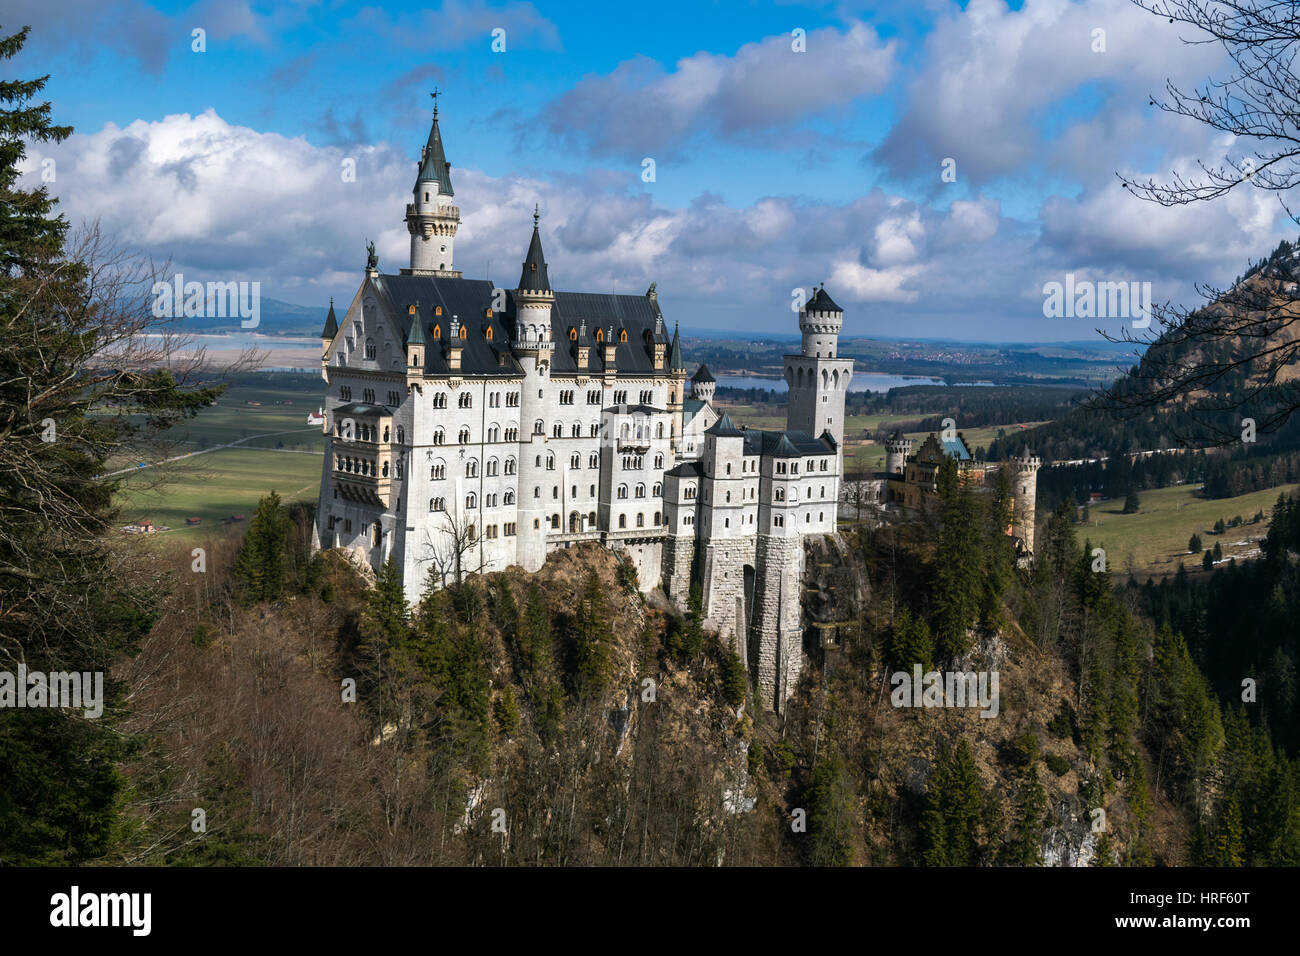 Neuschwanstein Castle in winter landscape, Fussen, Germany, Bavariam Europe - Stock Image